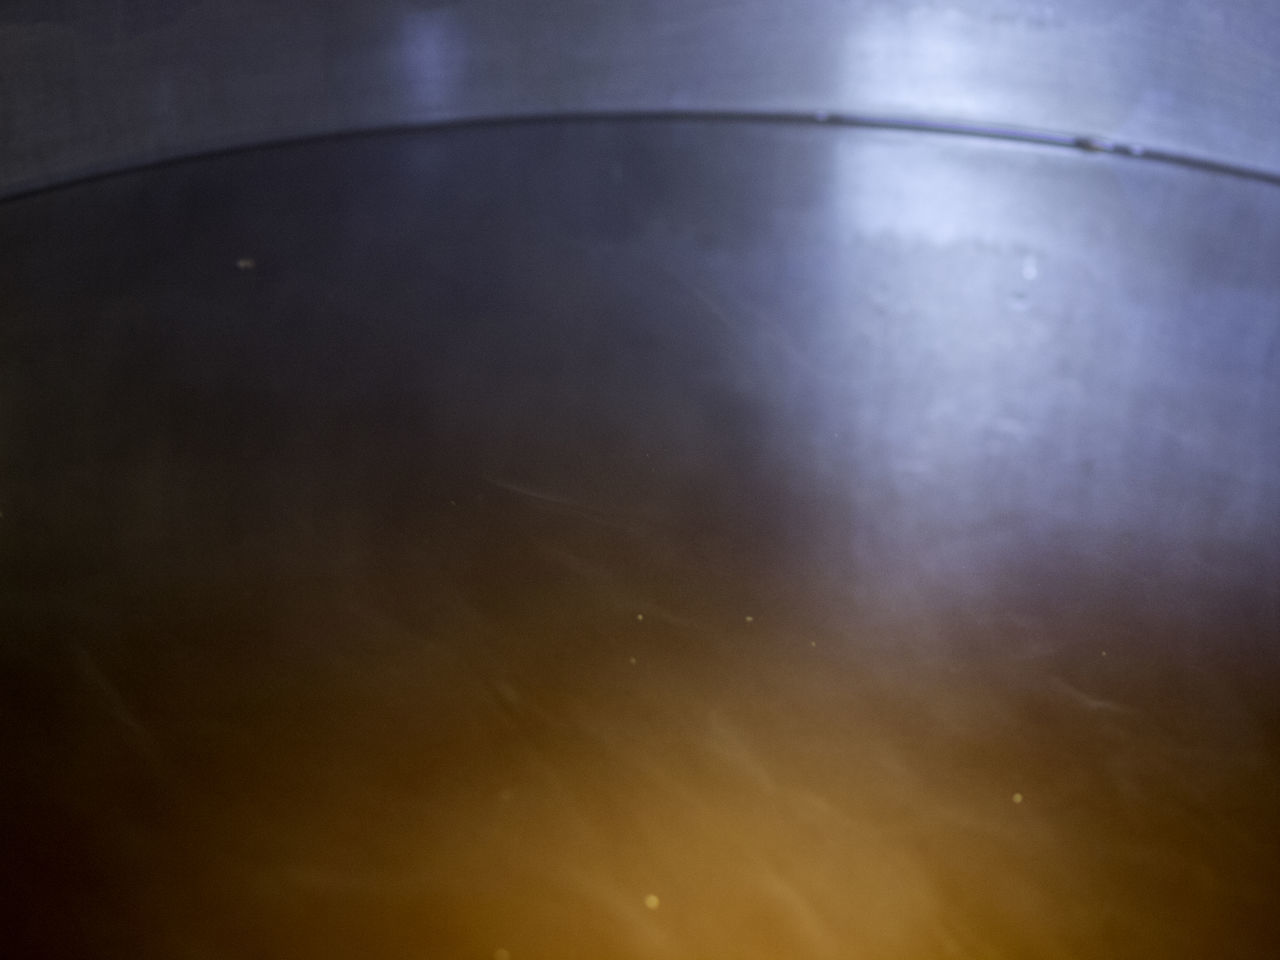 Backgrounds Beer Boiling Brewery Copy Space Craft Beer Doppelbock Liquid Mashing Tun Production Process